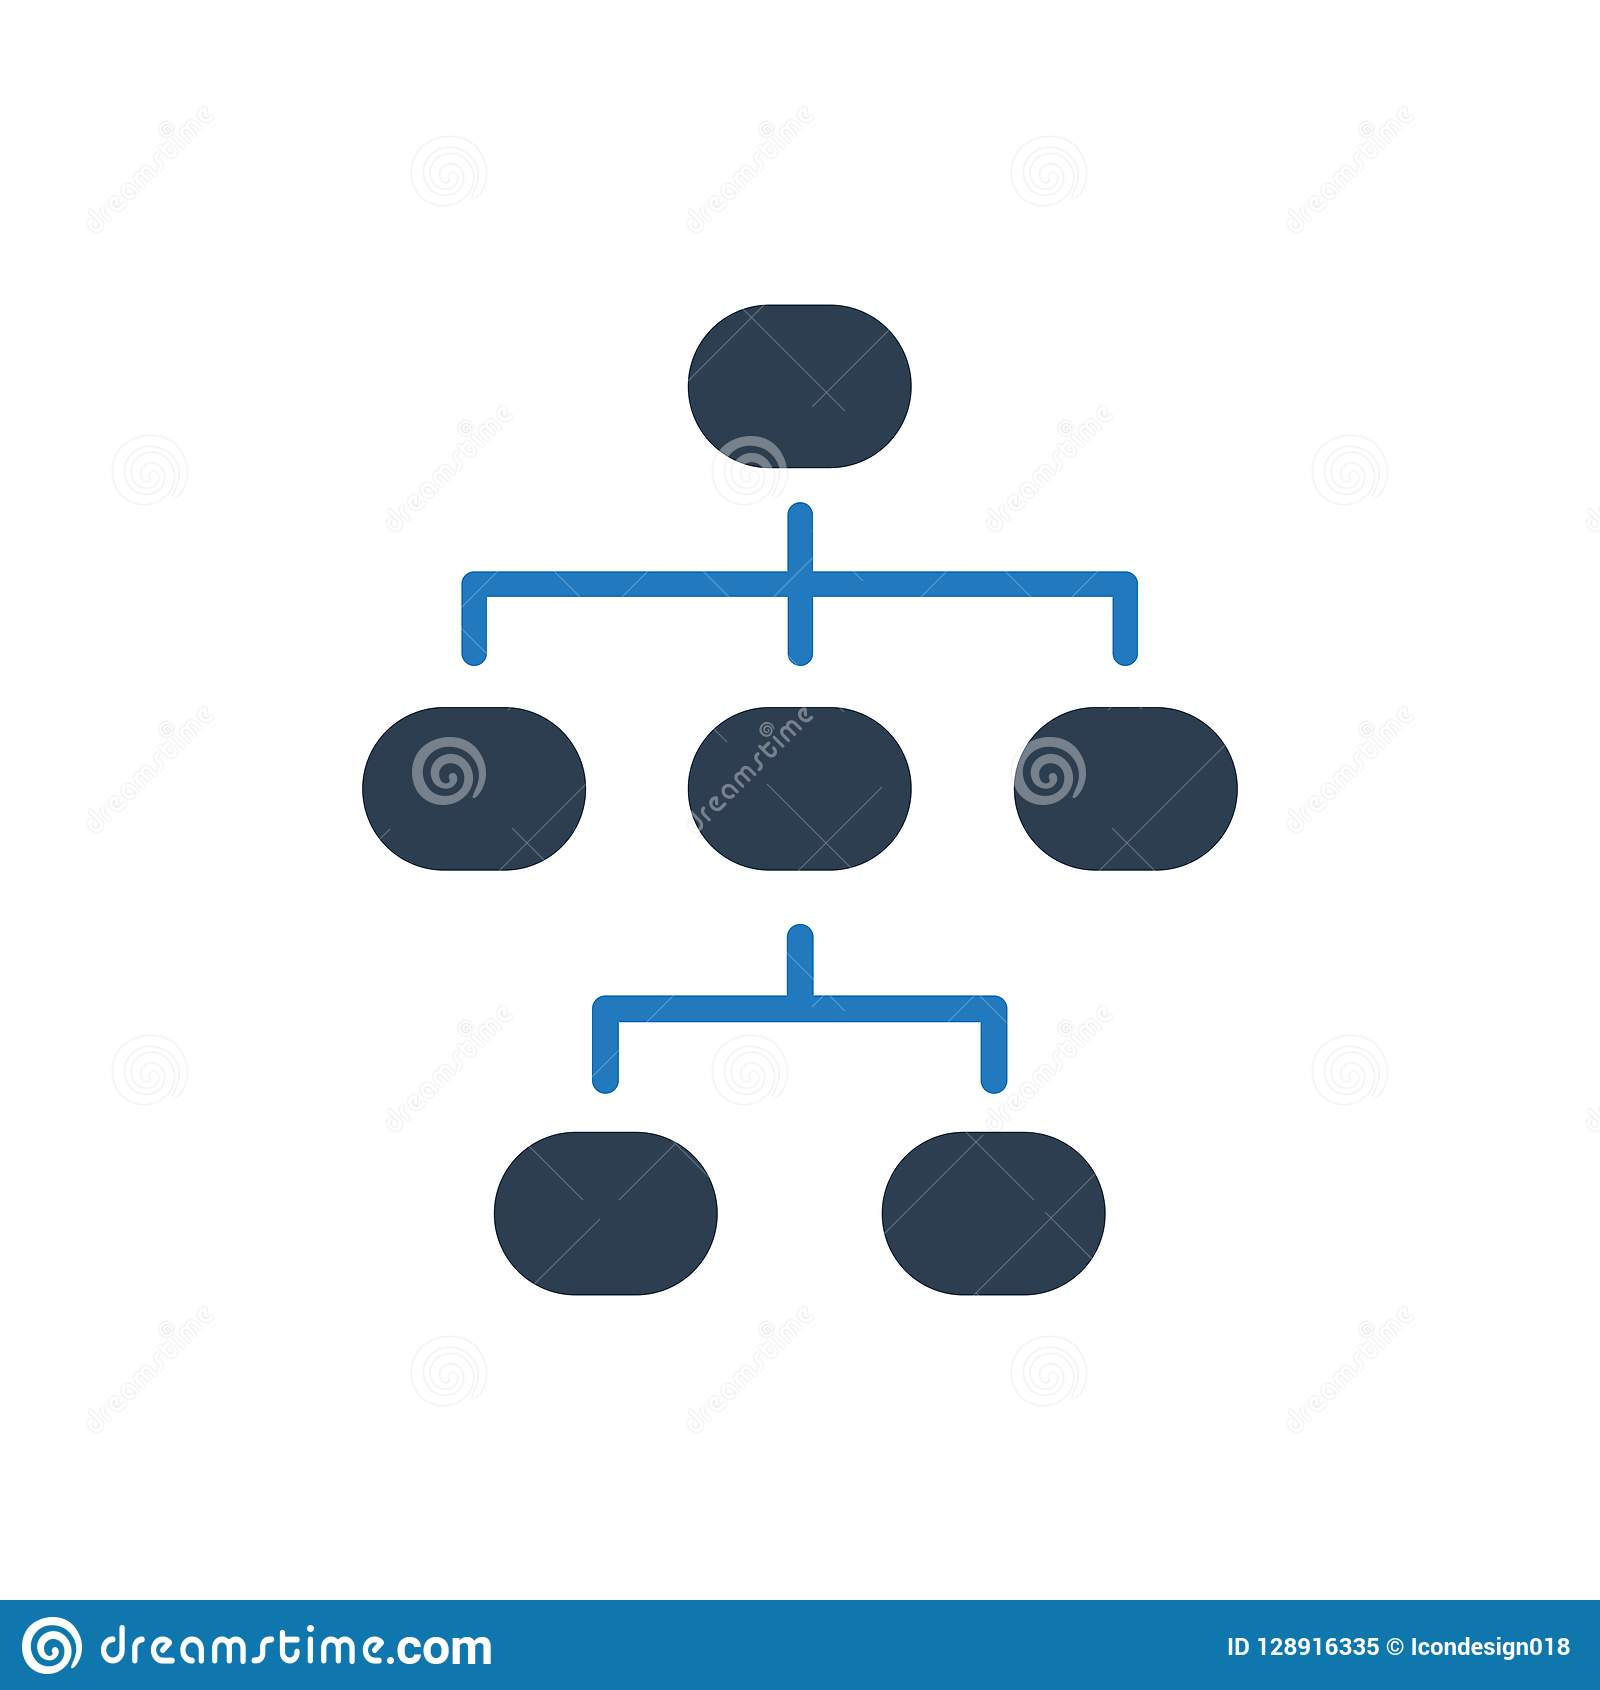 Hierarchy Structure Icon